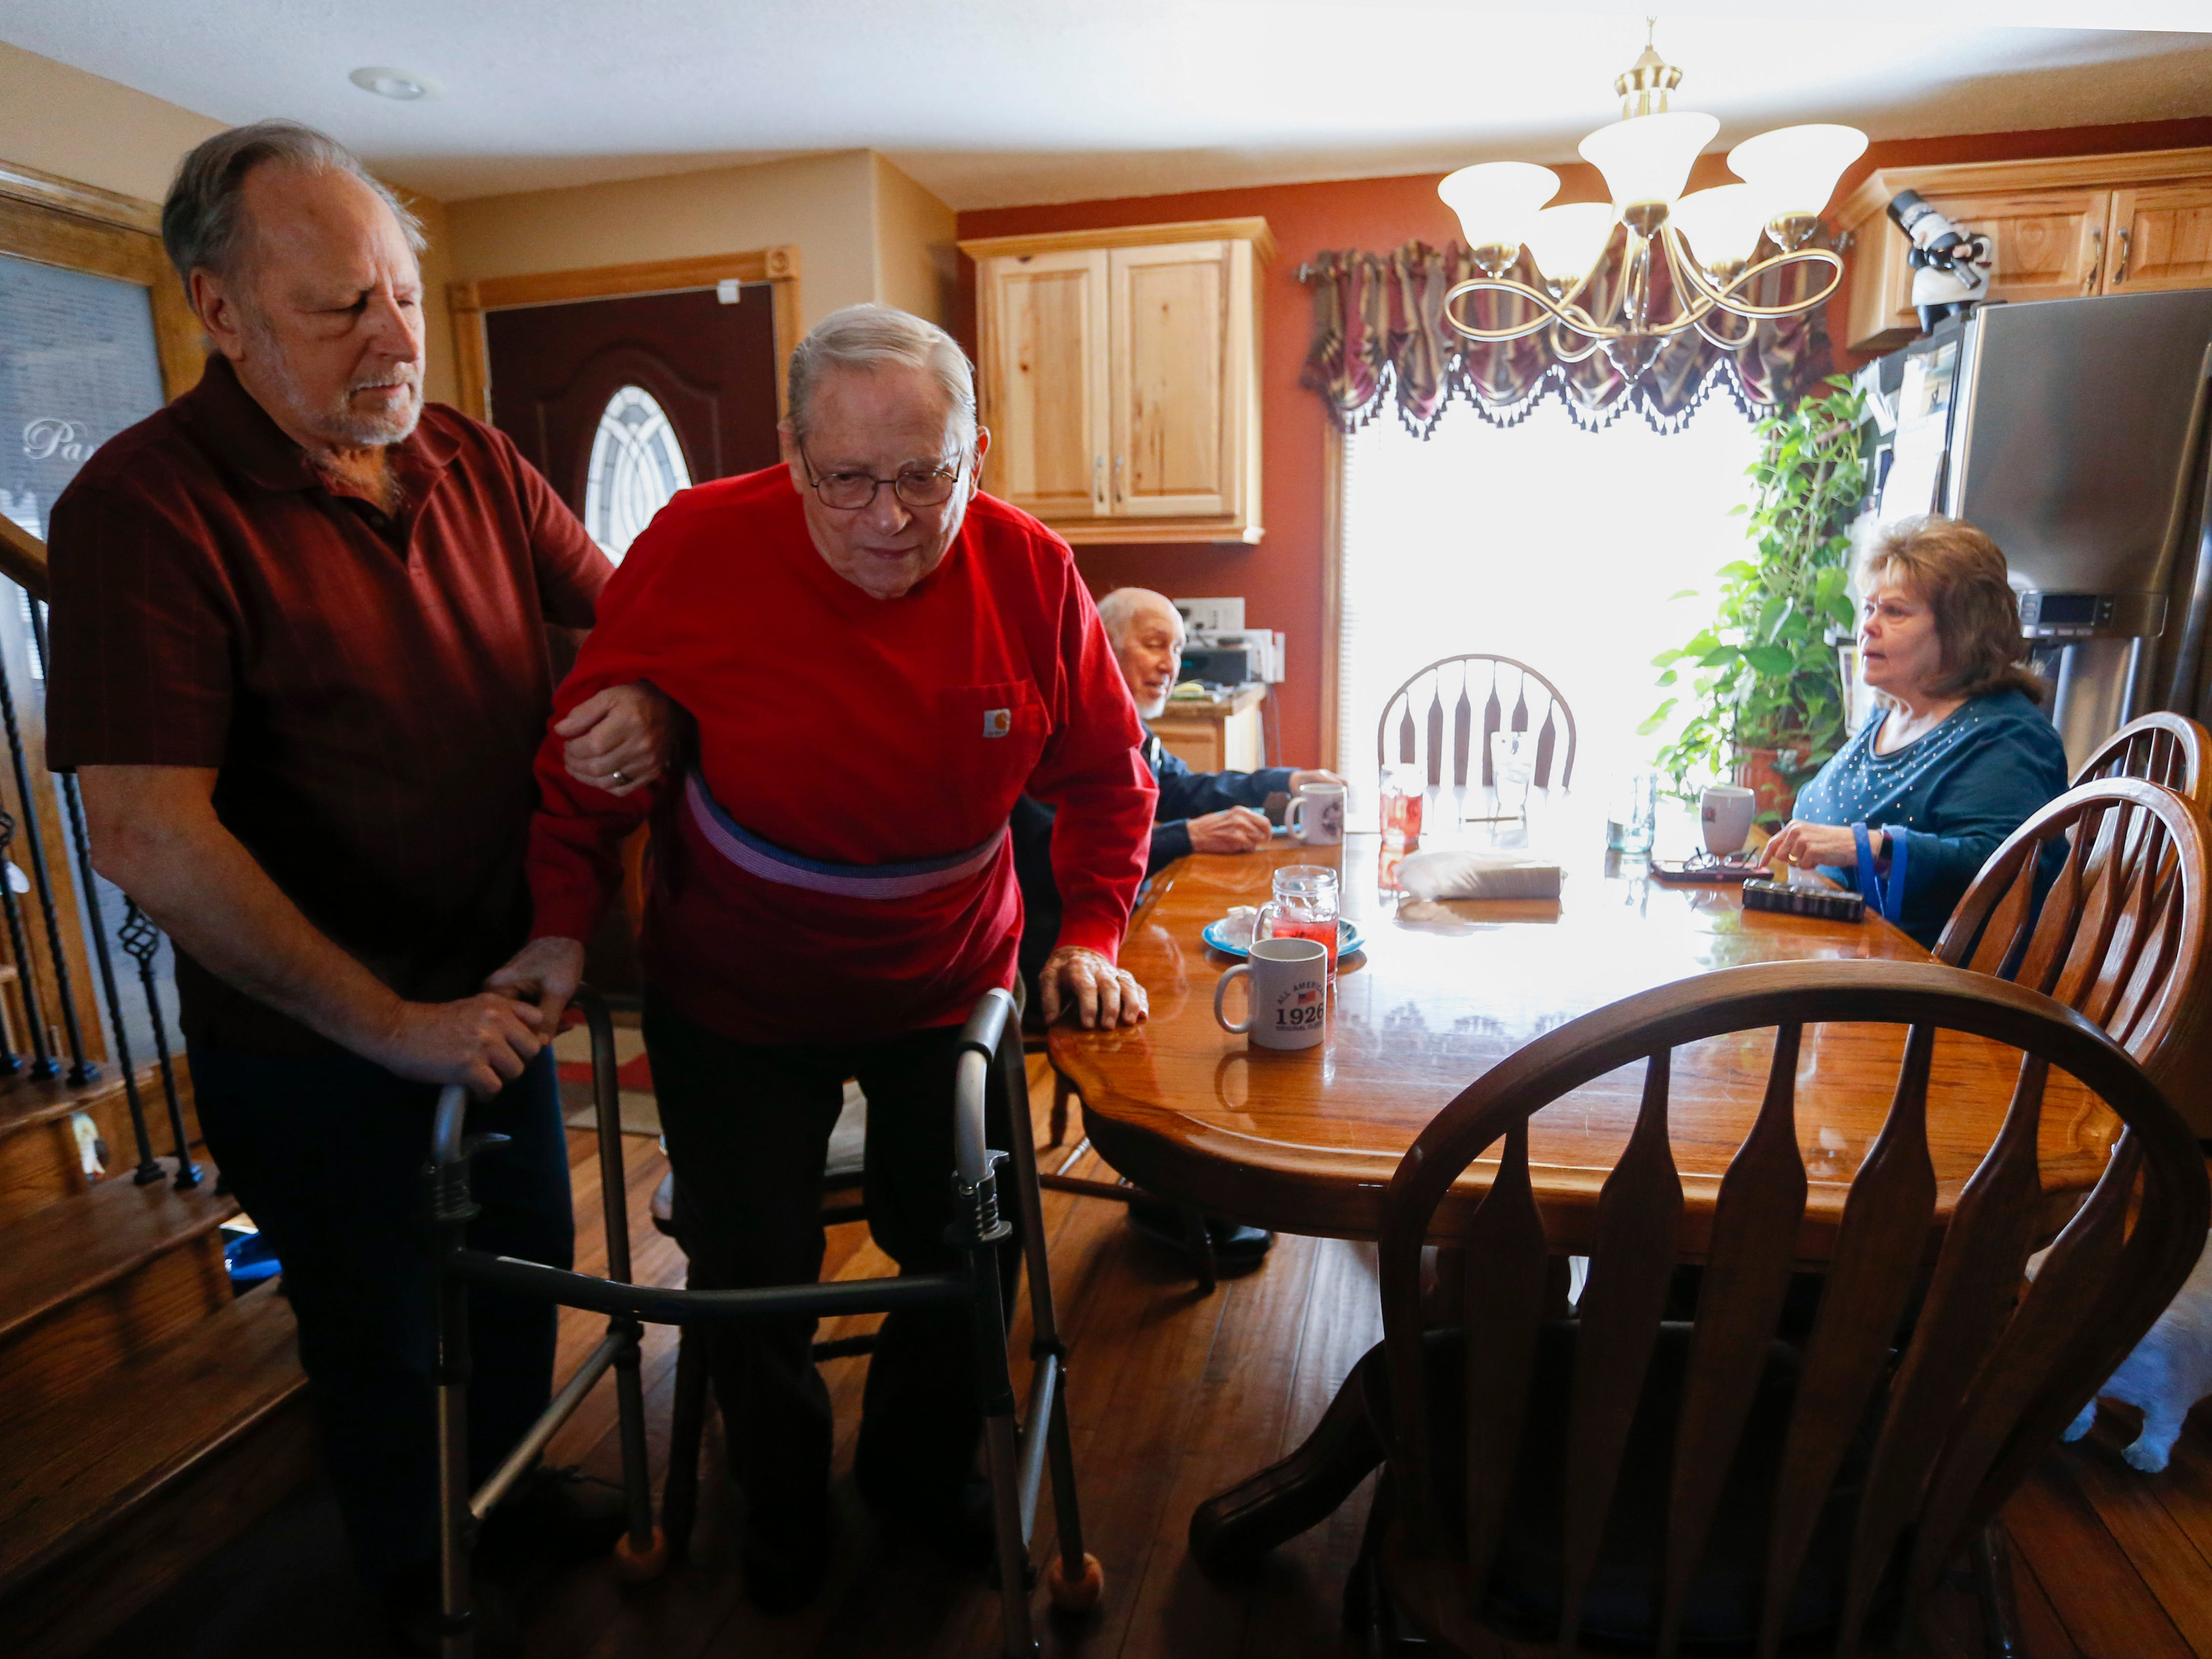 Frank Keim helps veteran Donald Gundlach, 92, up from his chair on Tuesday, Jan. 29, 2019. Keim and his wife opened up their home to veterans as part of the VA's Medical Foster Home Program.